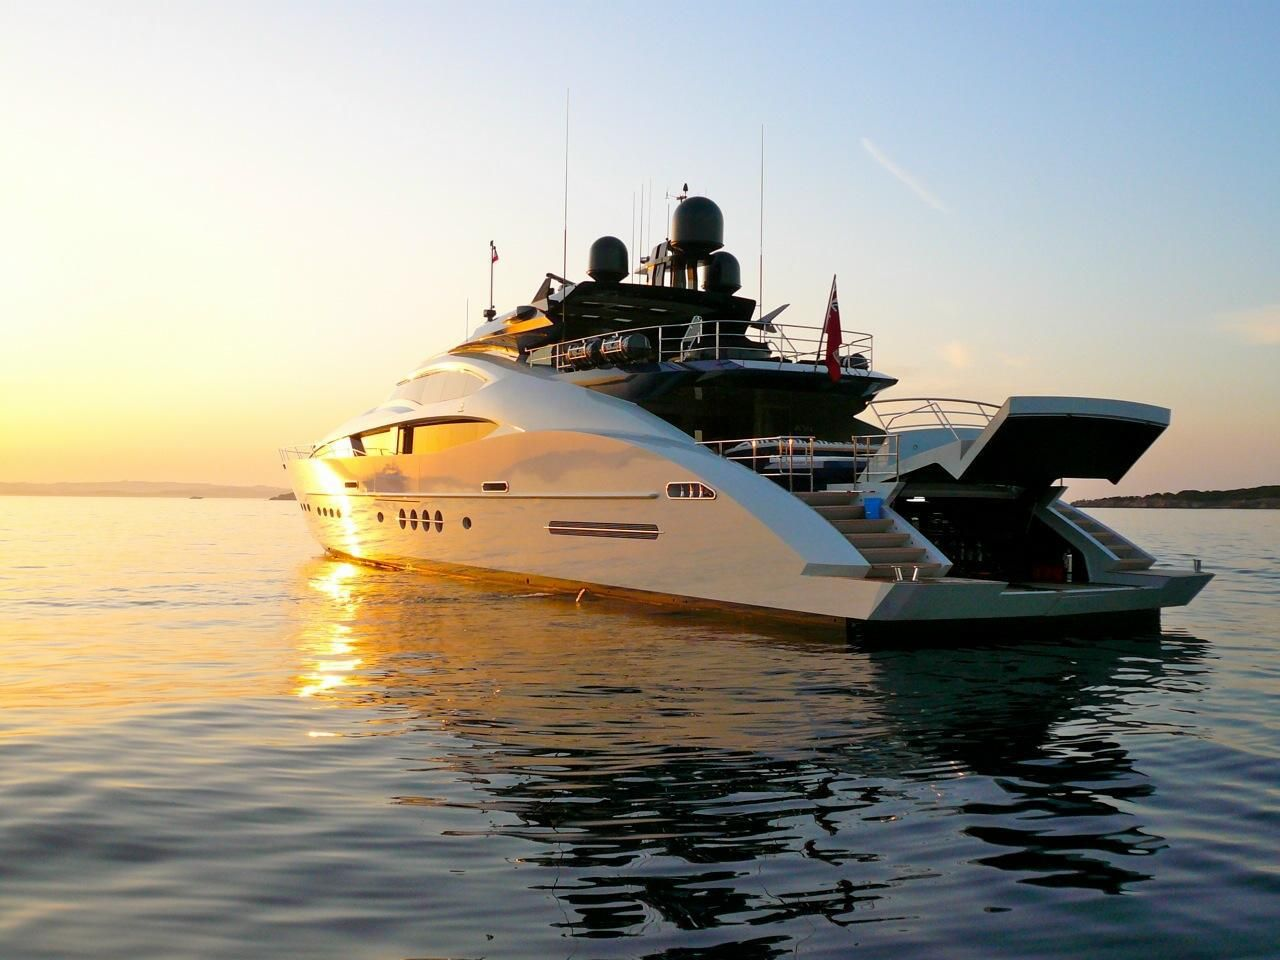 Palmer Johnson Yacht photographed in the stunning evening light!